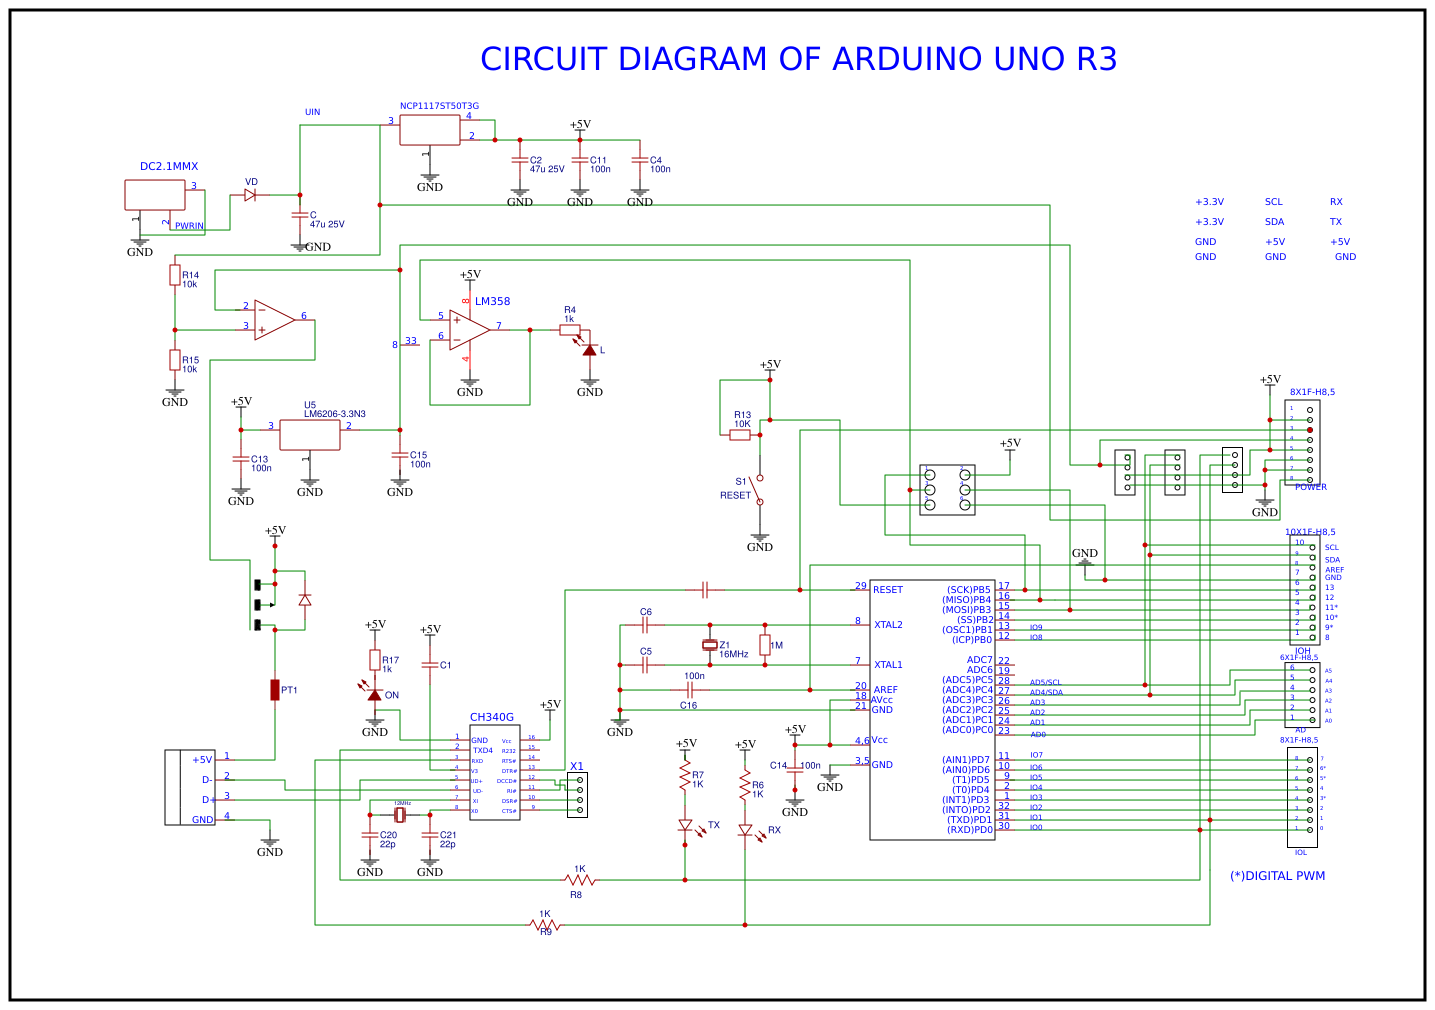 BASIC CIRCUIT DIAGRAM OF ARDUINO UNO R3 - EasyEDA